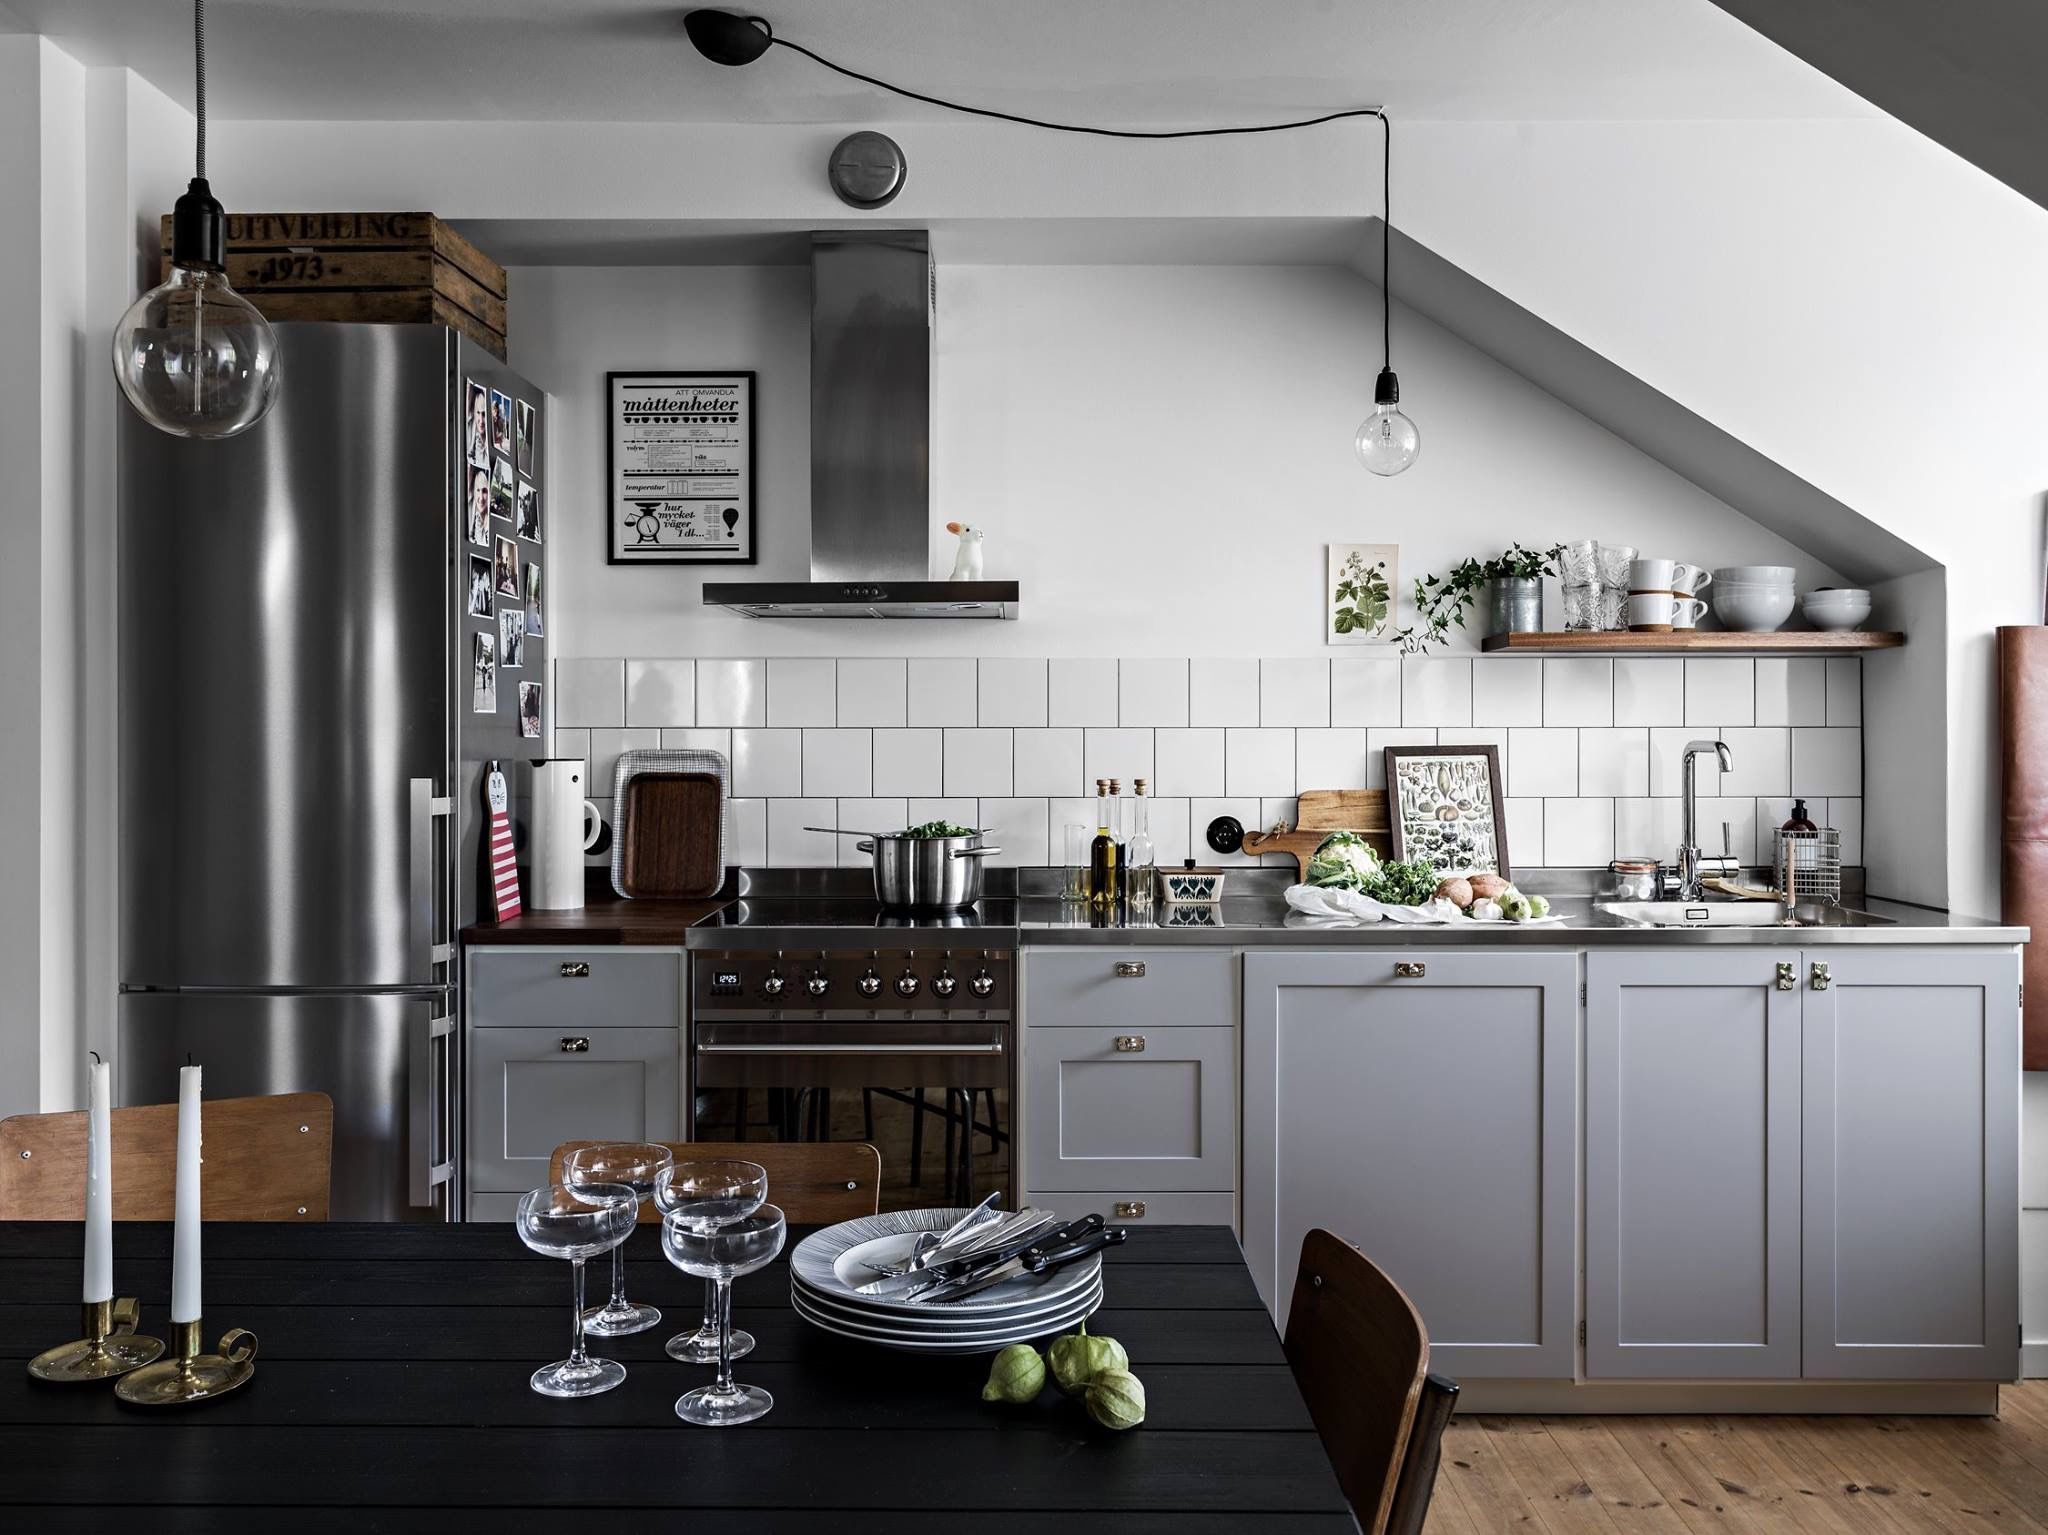 Pin by Noelle Evans on Design | Small apartment kitchen ...